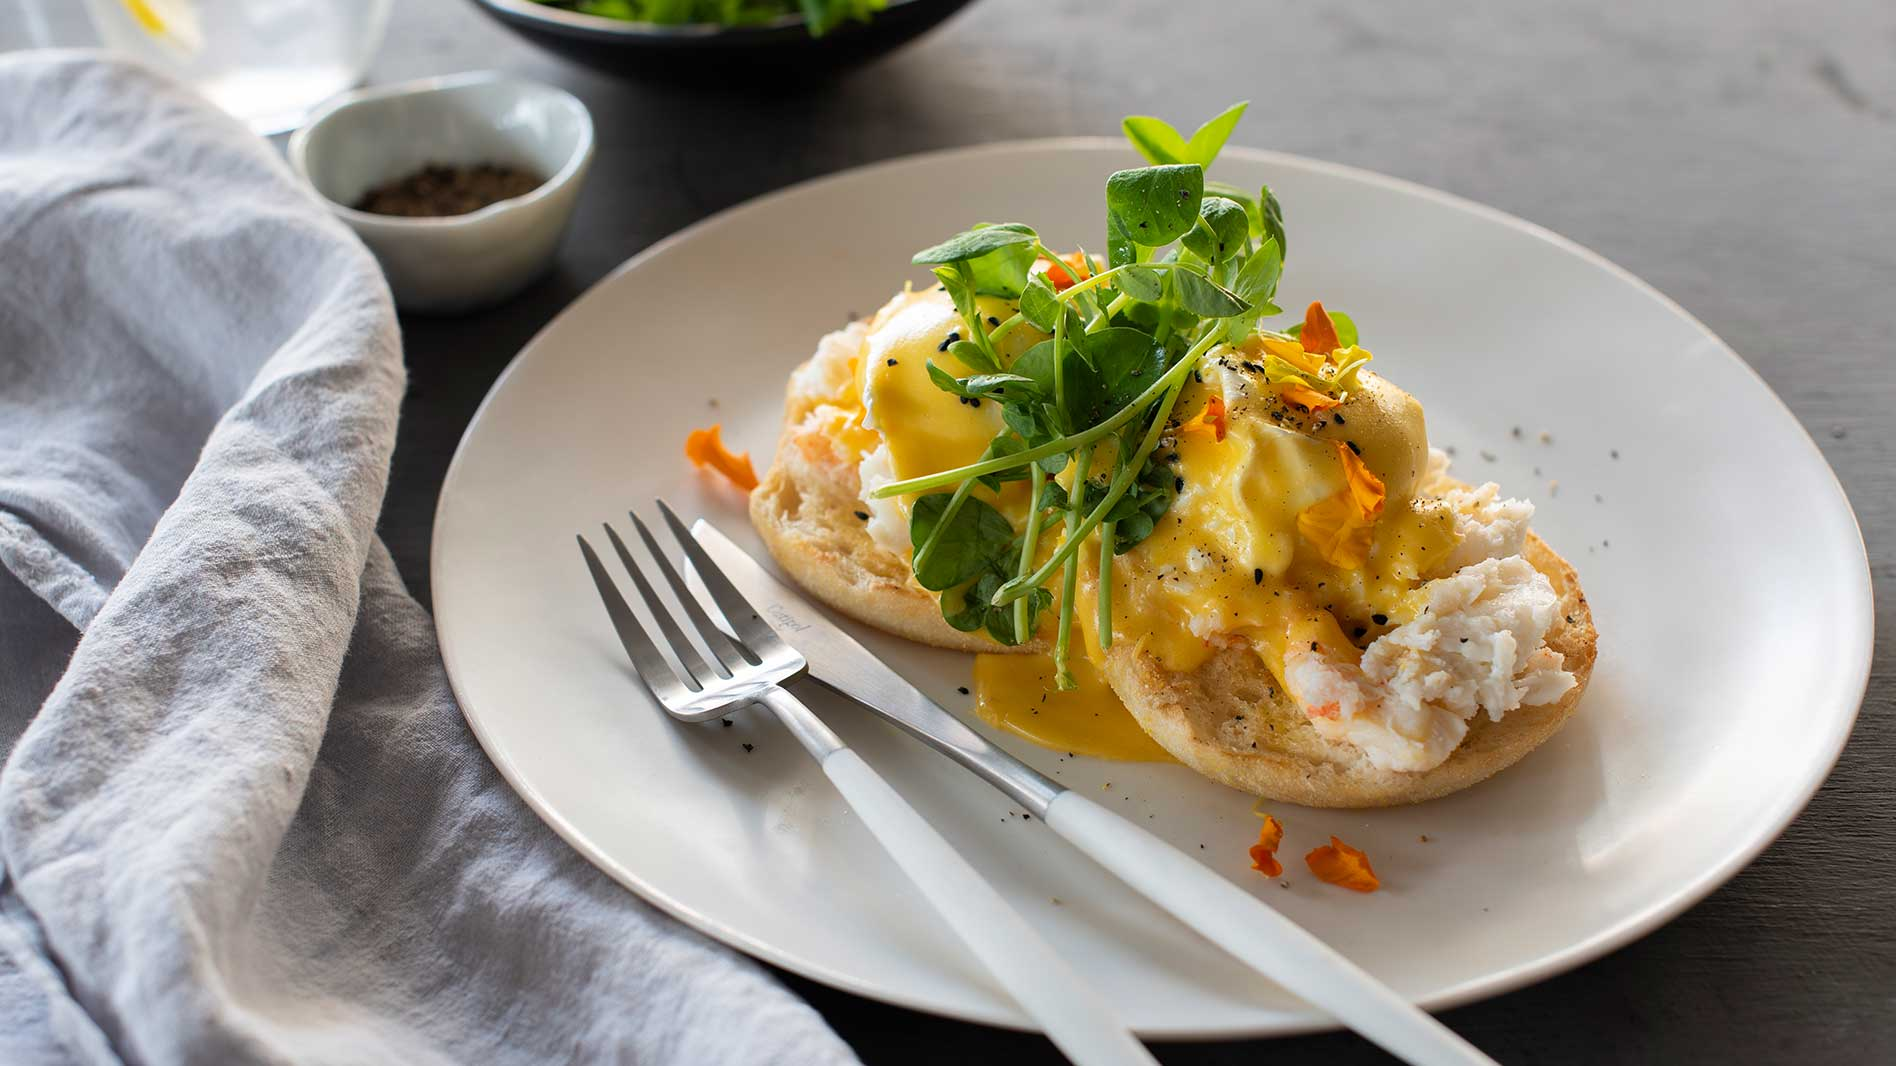 Breakfast menu ideas: Eggs Benedict, Spanner Crab & Wasabi